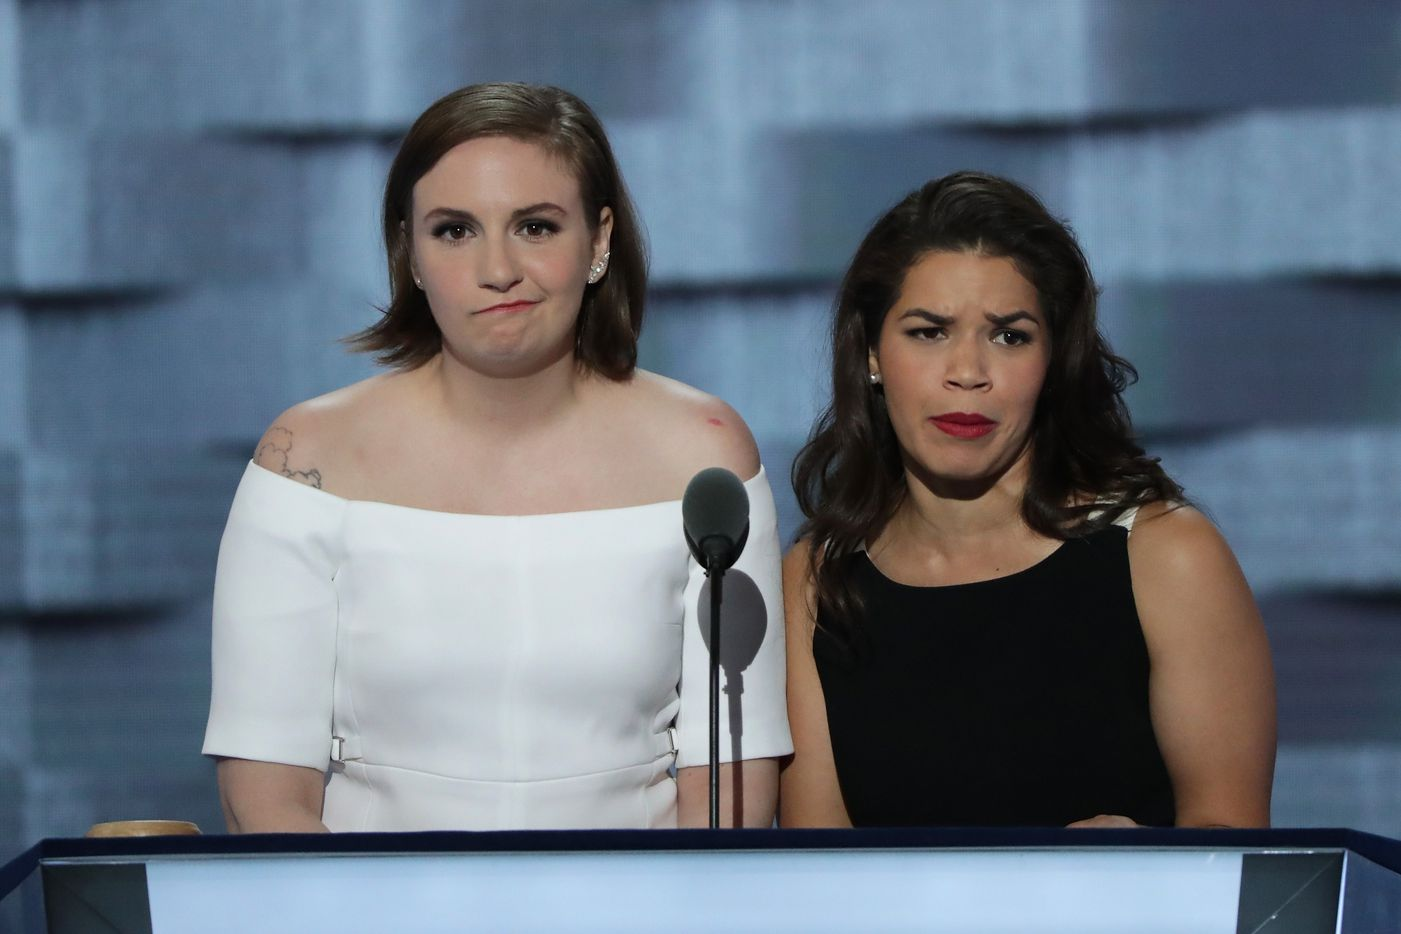 Actresses America Fererra (R) and Lena Dunham (L) deliver remarks on the second day of the Democratic National Convention.